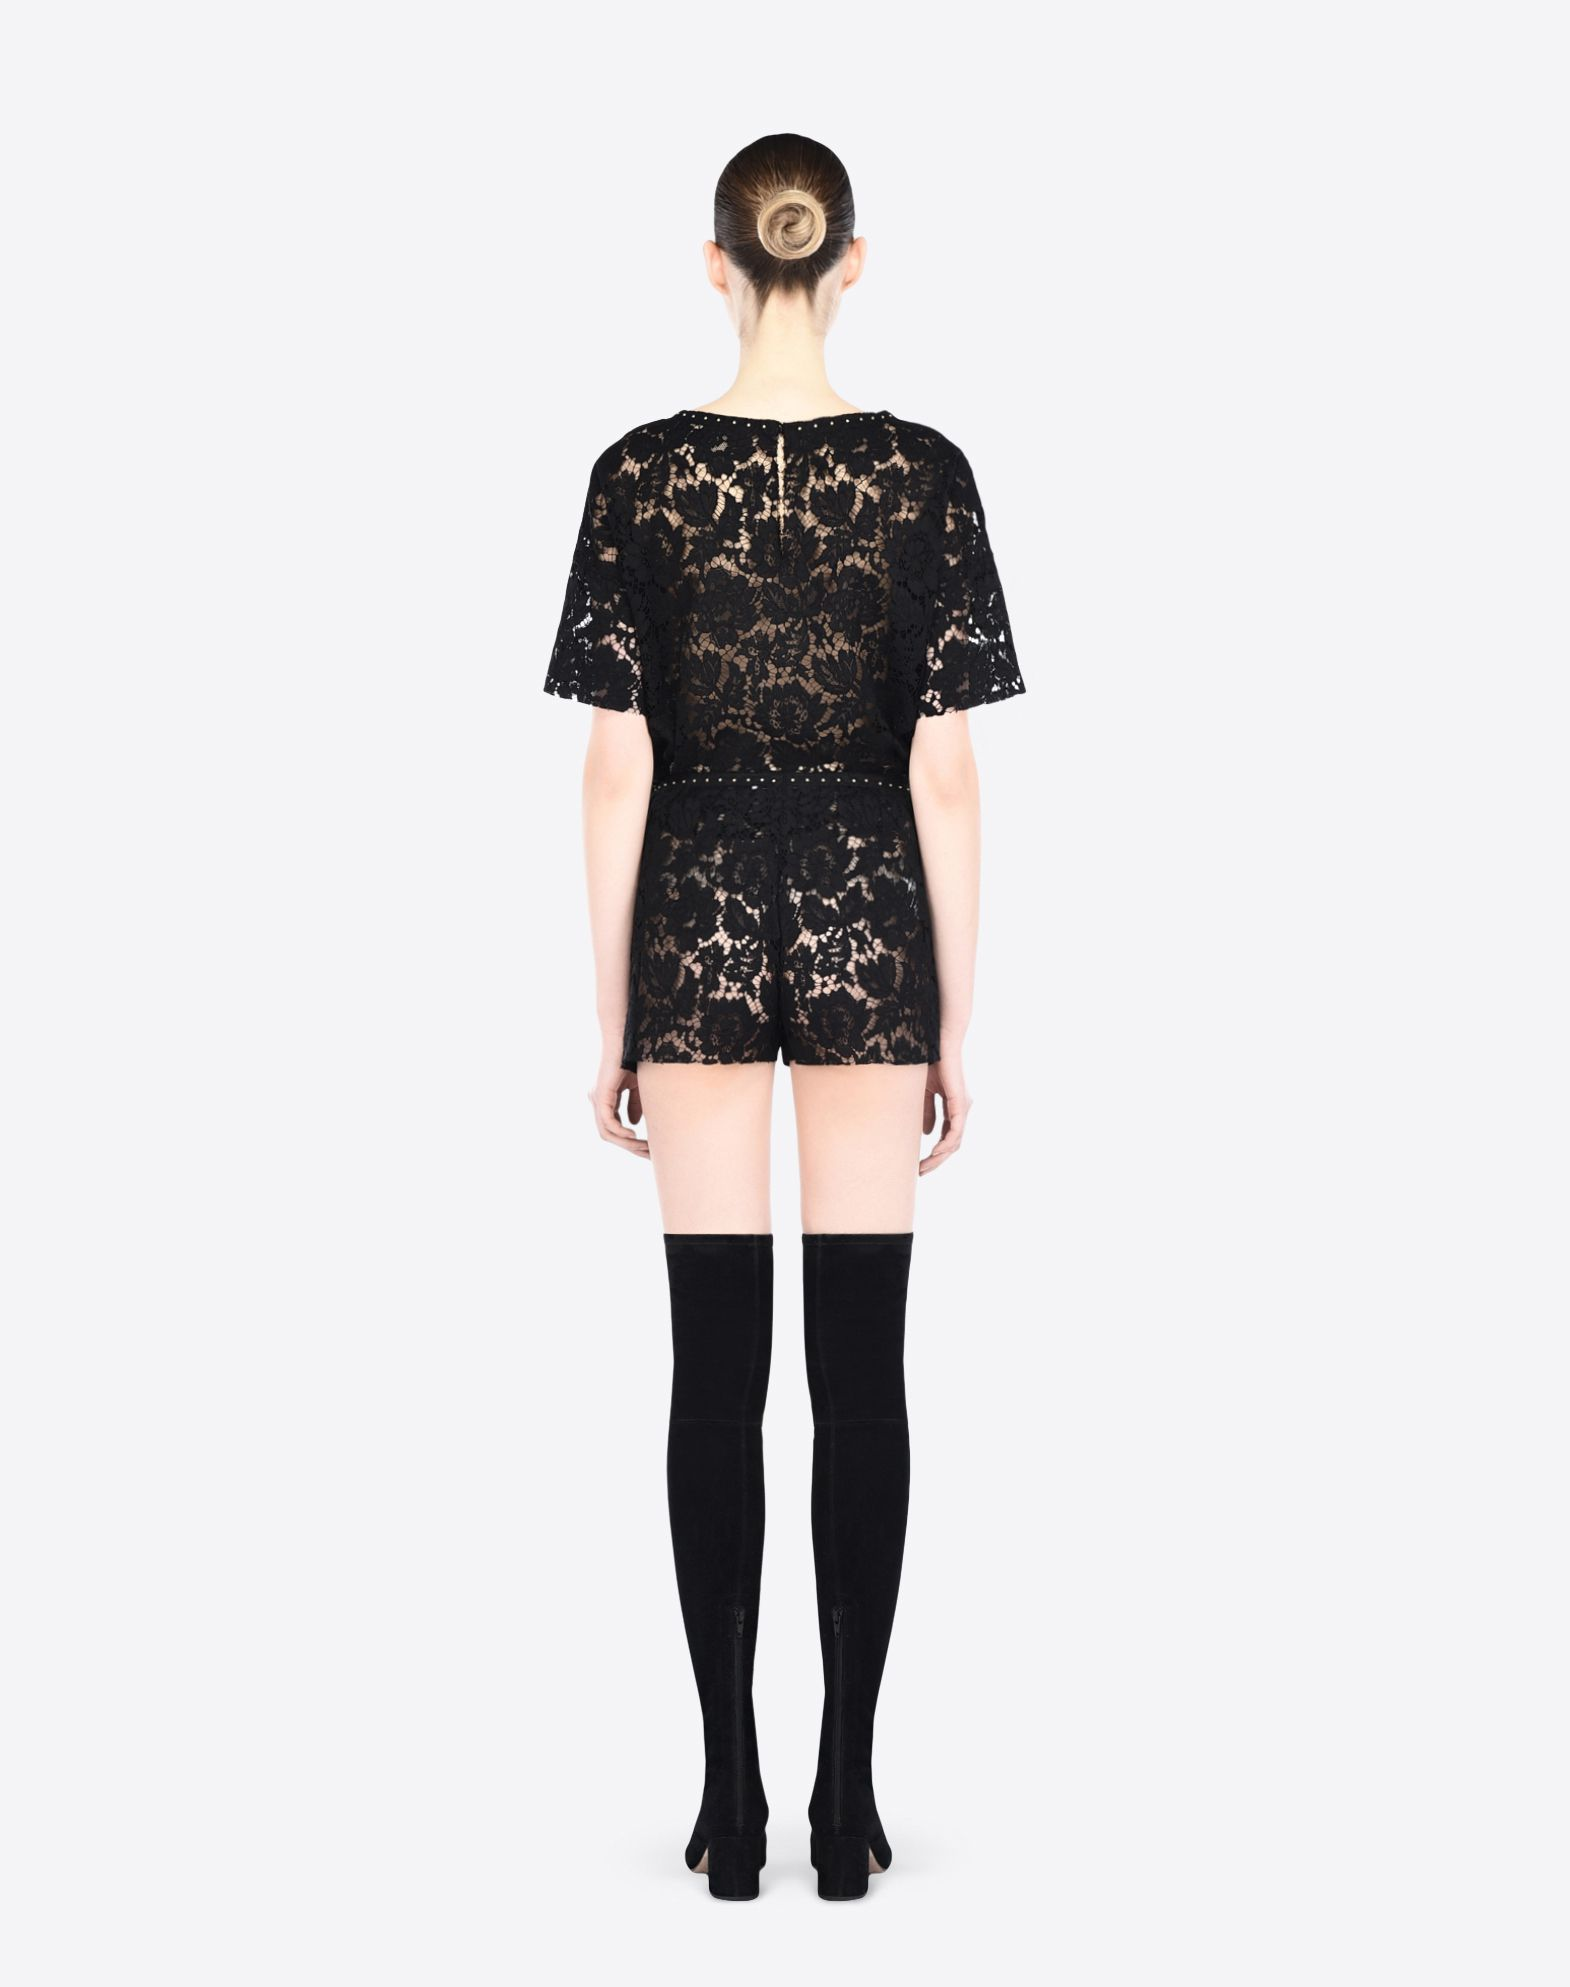 VALENTINO Studs Lace Solid colour Round collar Rear button closure Short sleeves  37860512bk